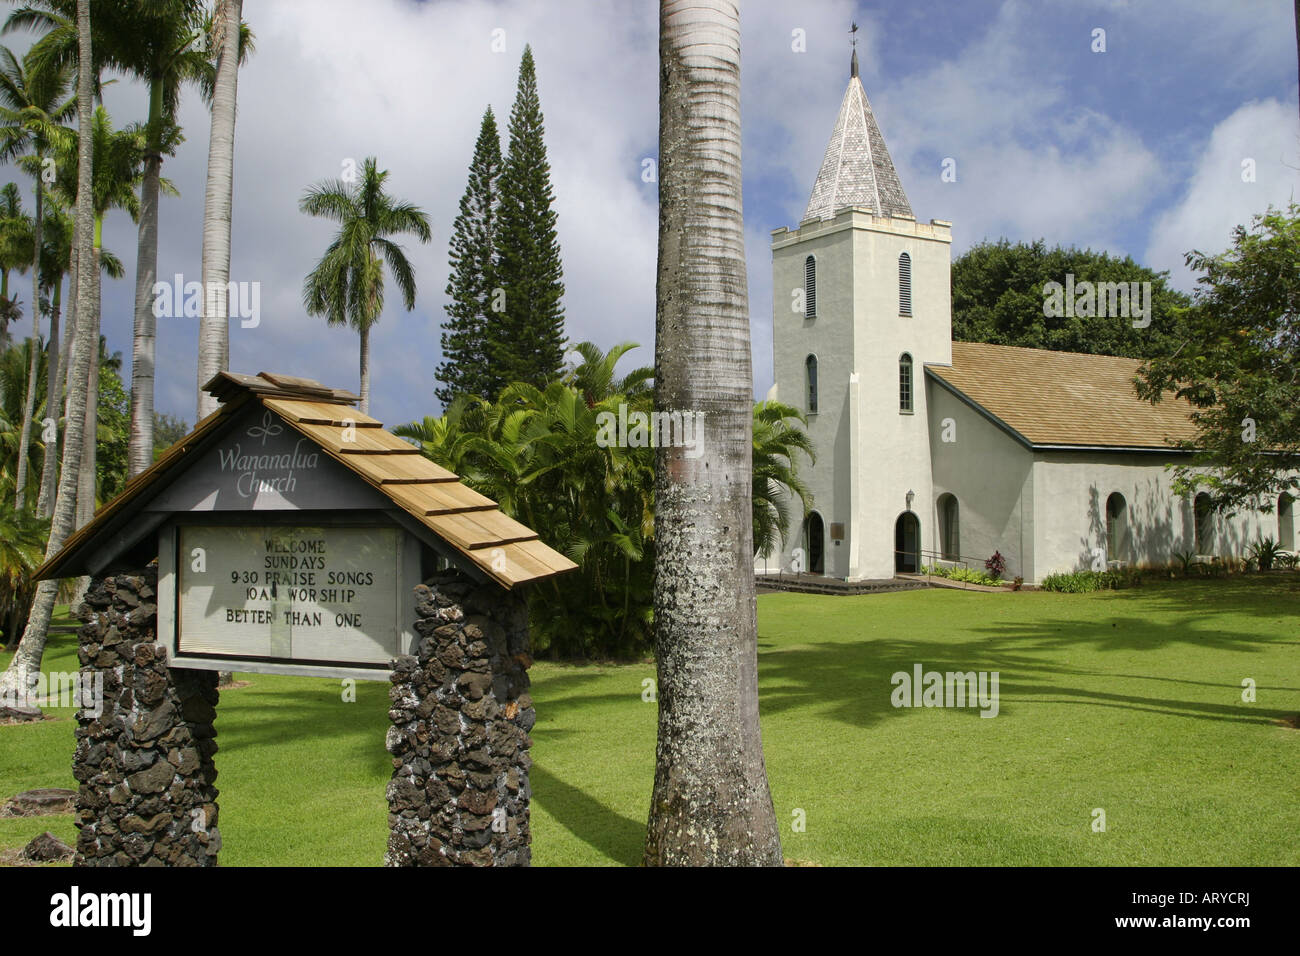 The glorious old Wananalua Church located in the heart of Hana. A must see stop in this quaint Maui town. - Stock Image